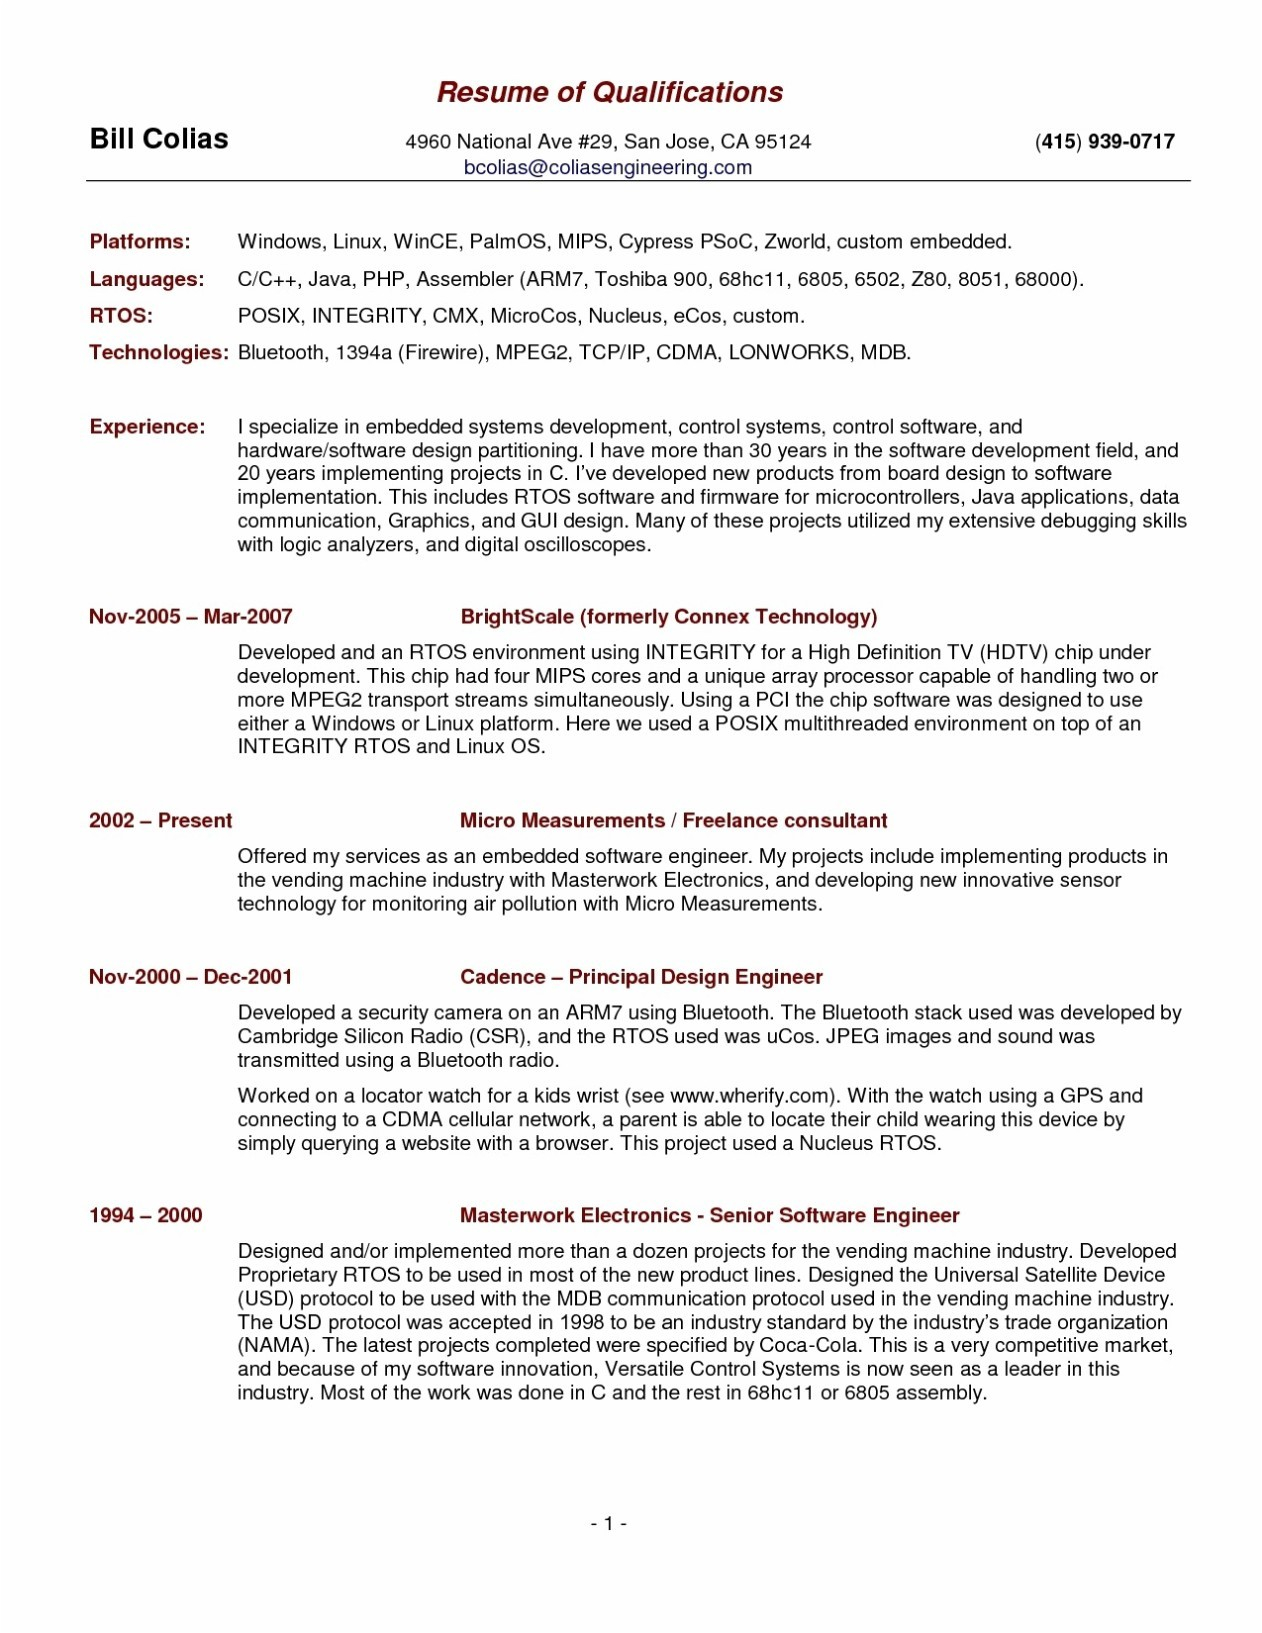 student resume template word example-Student Resume Template Word 23 Student Resume Template Word 20-c